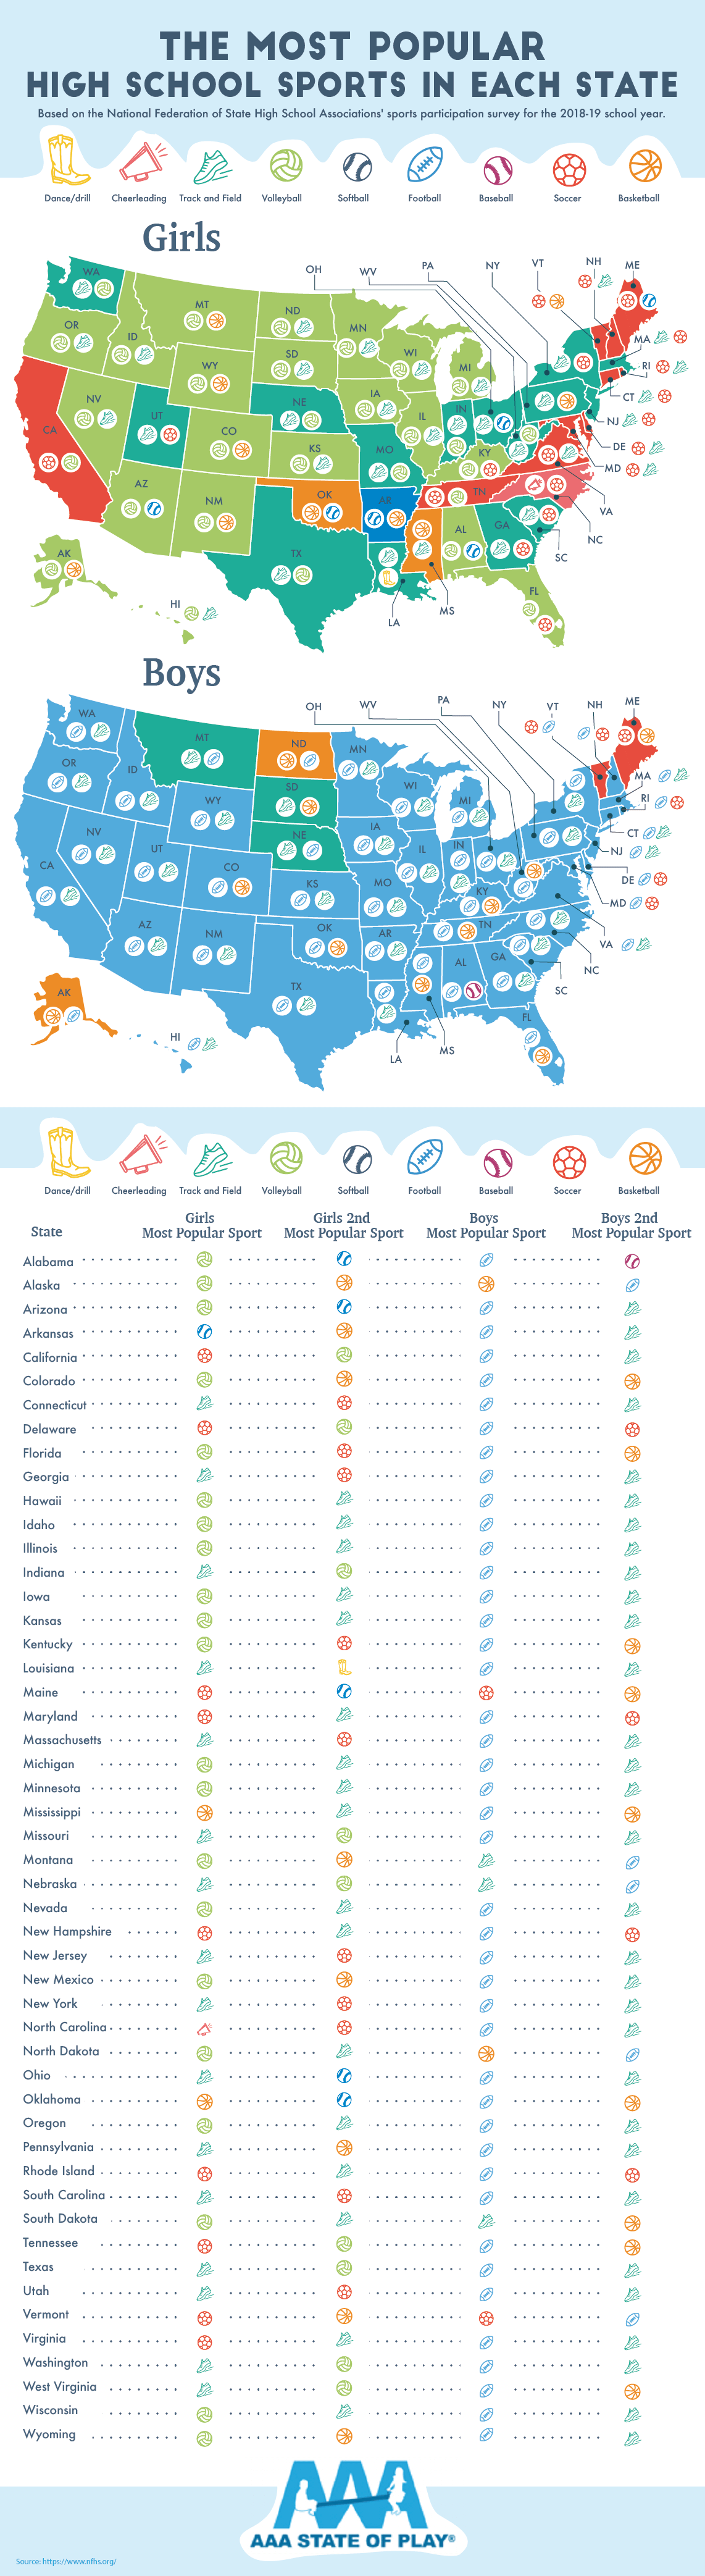 The Most Popular High School Sports in Each State - AAAStateofPlay.com - Infographic